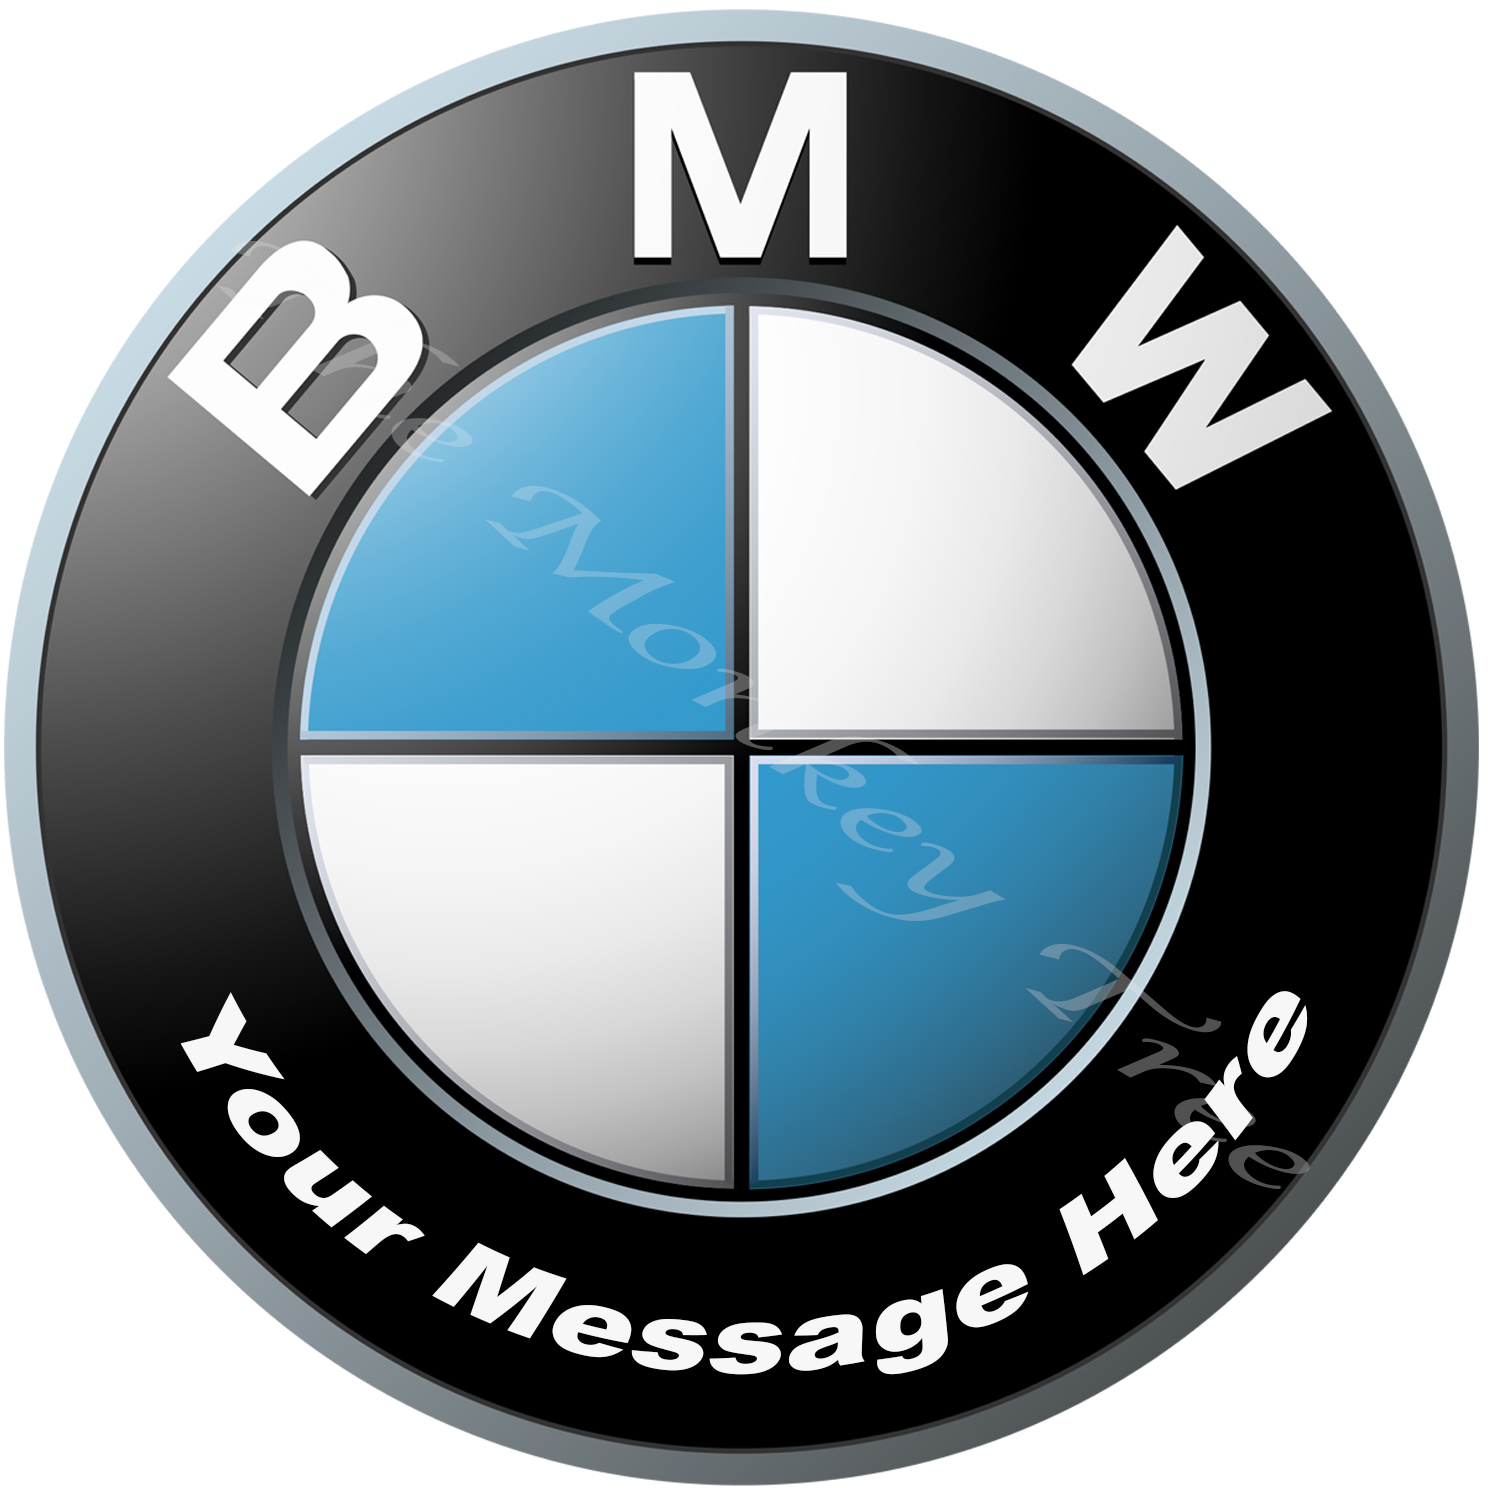 bmw birthday cake edible cake image topper bmw